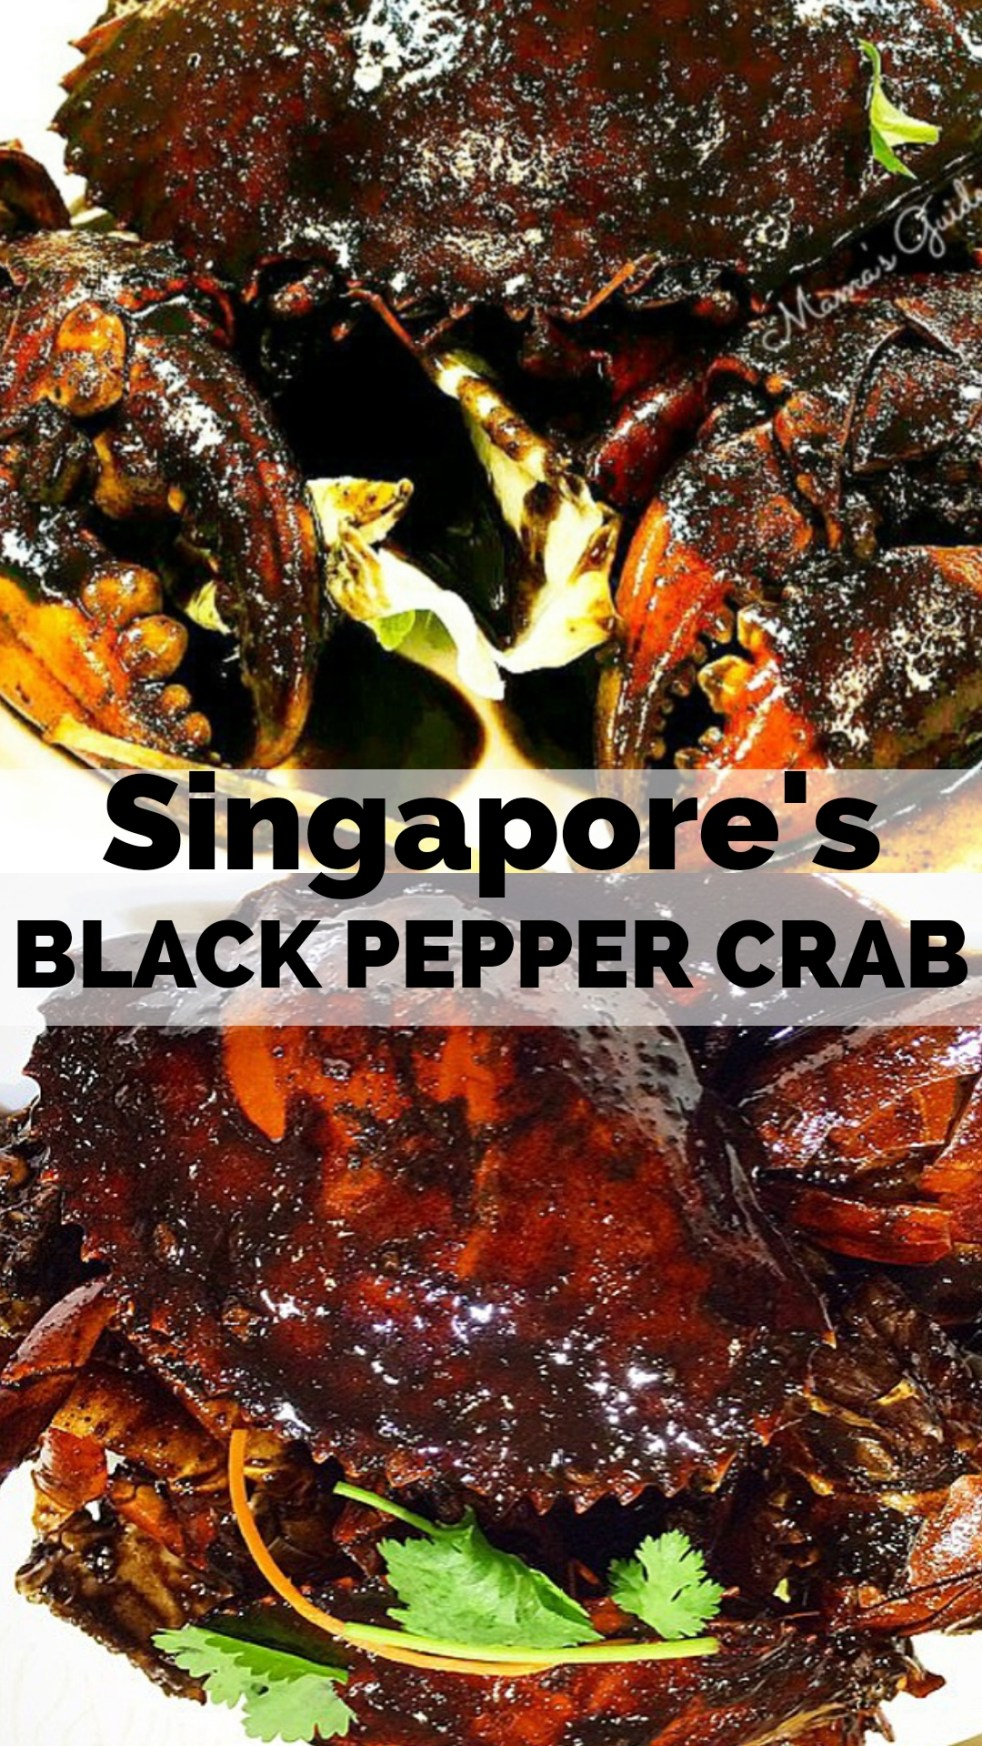 Singapore's Black Pepper Crab